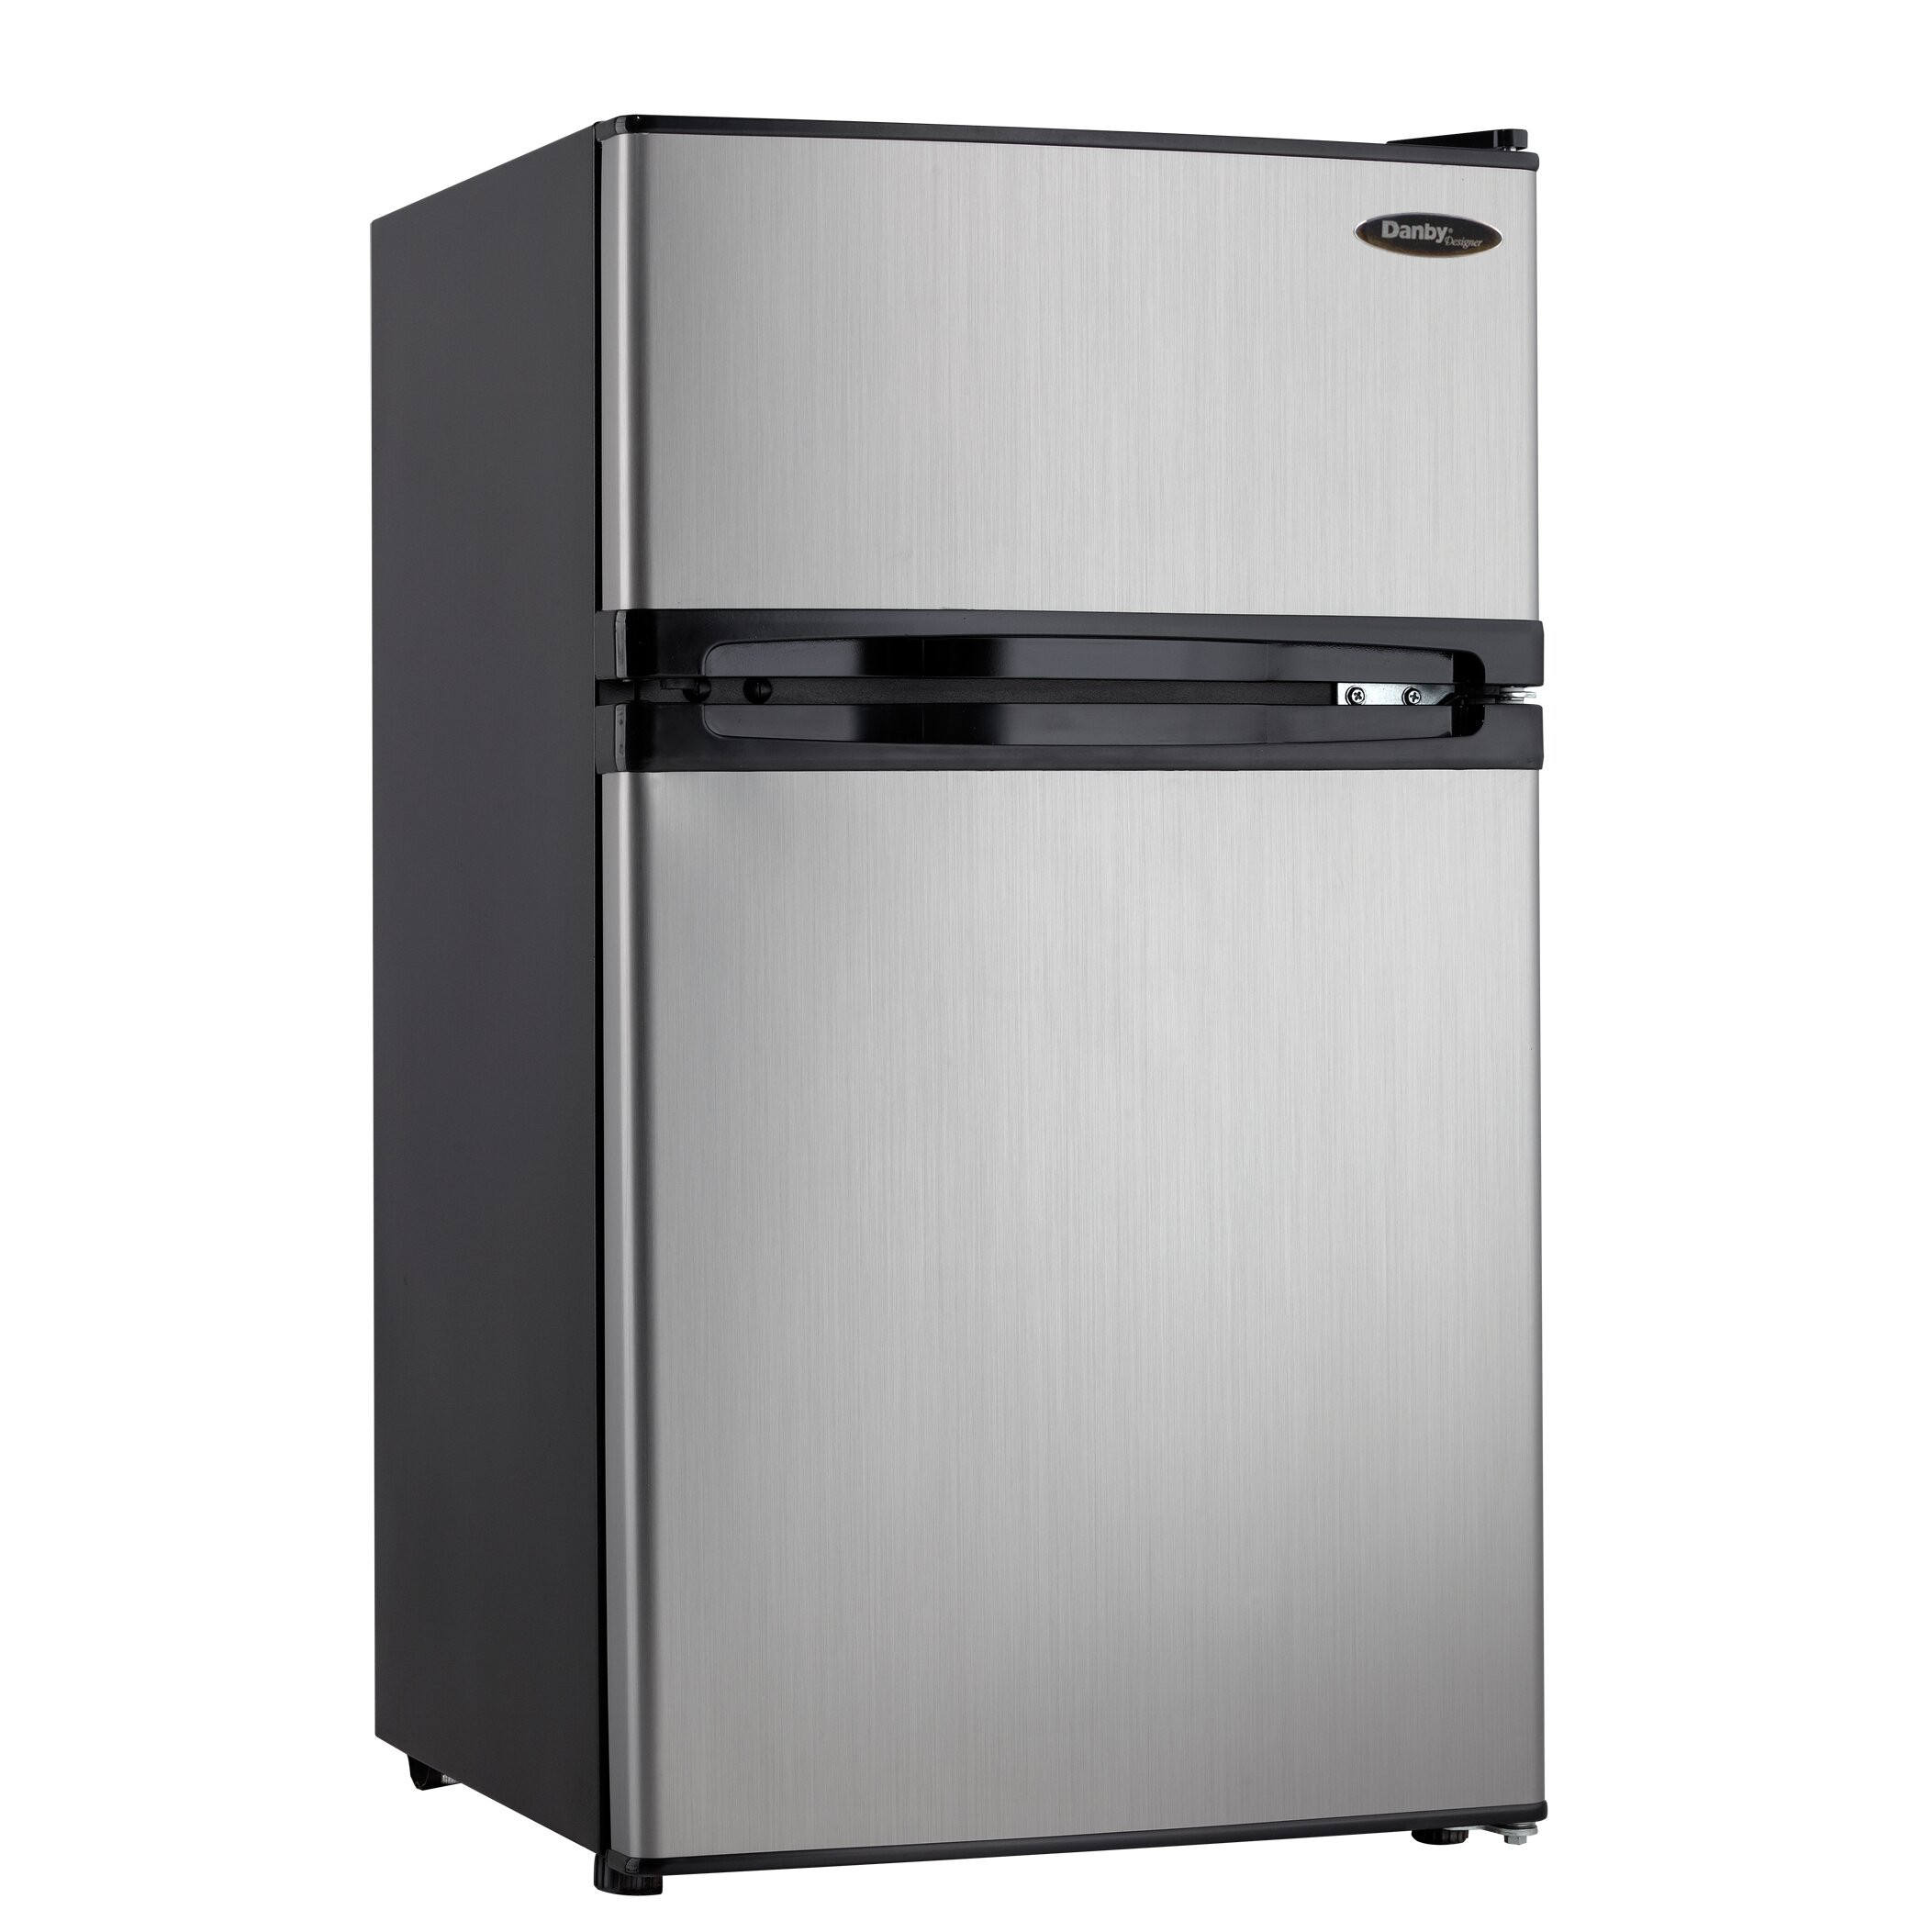 Danby 3 1 cu ft compact refrigerator with freezer for 1 door fridge malaysia